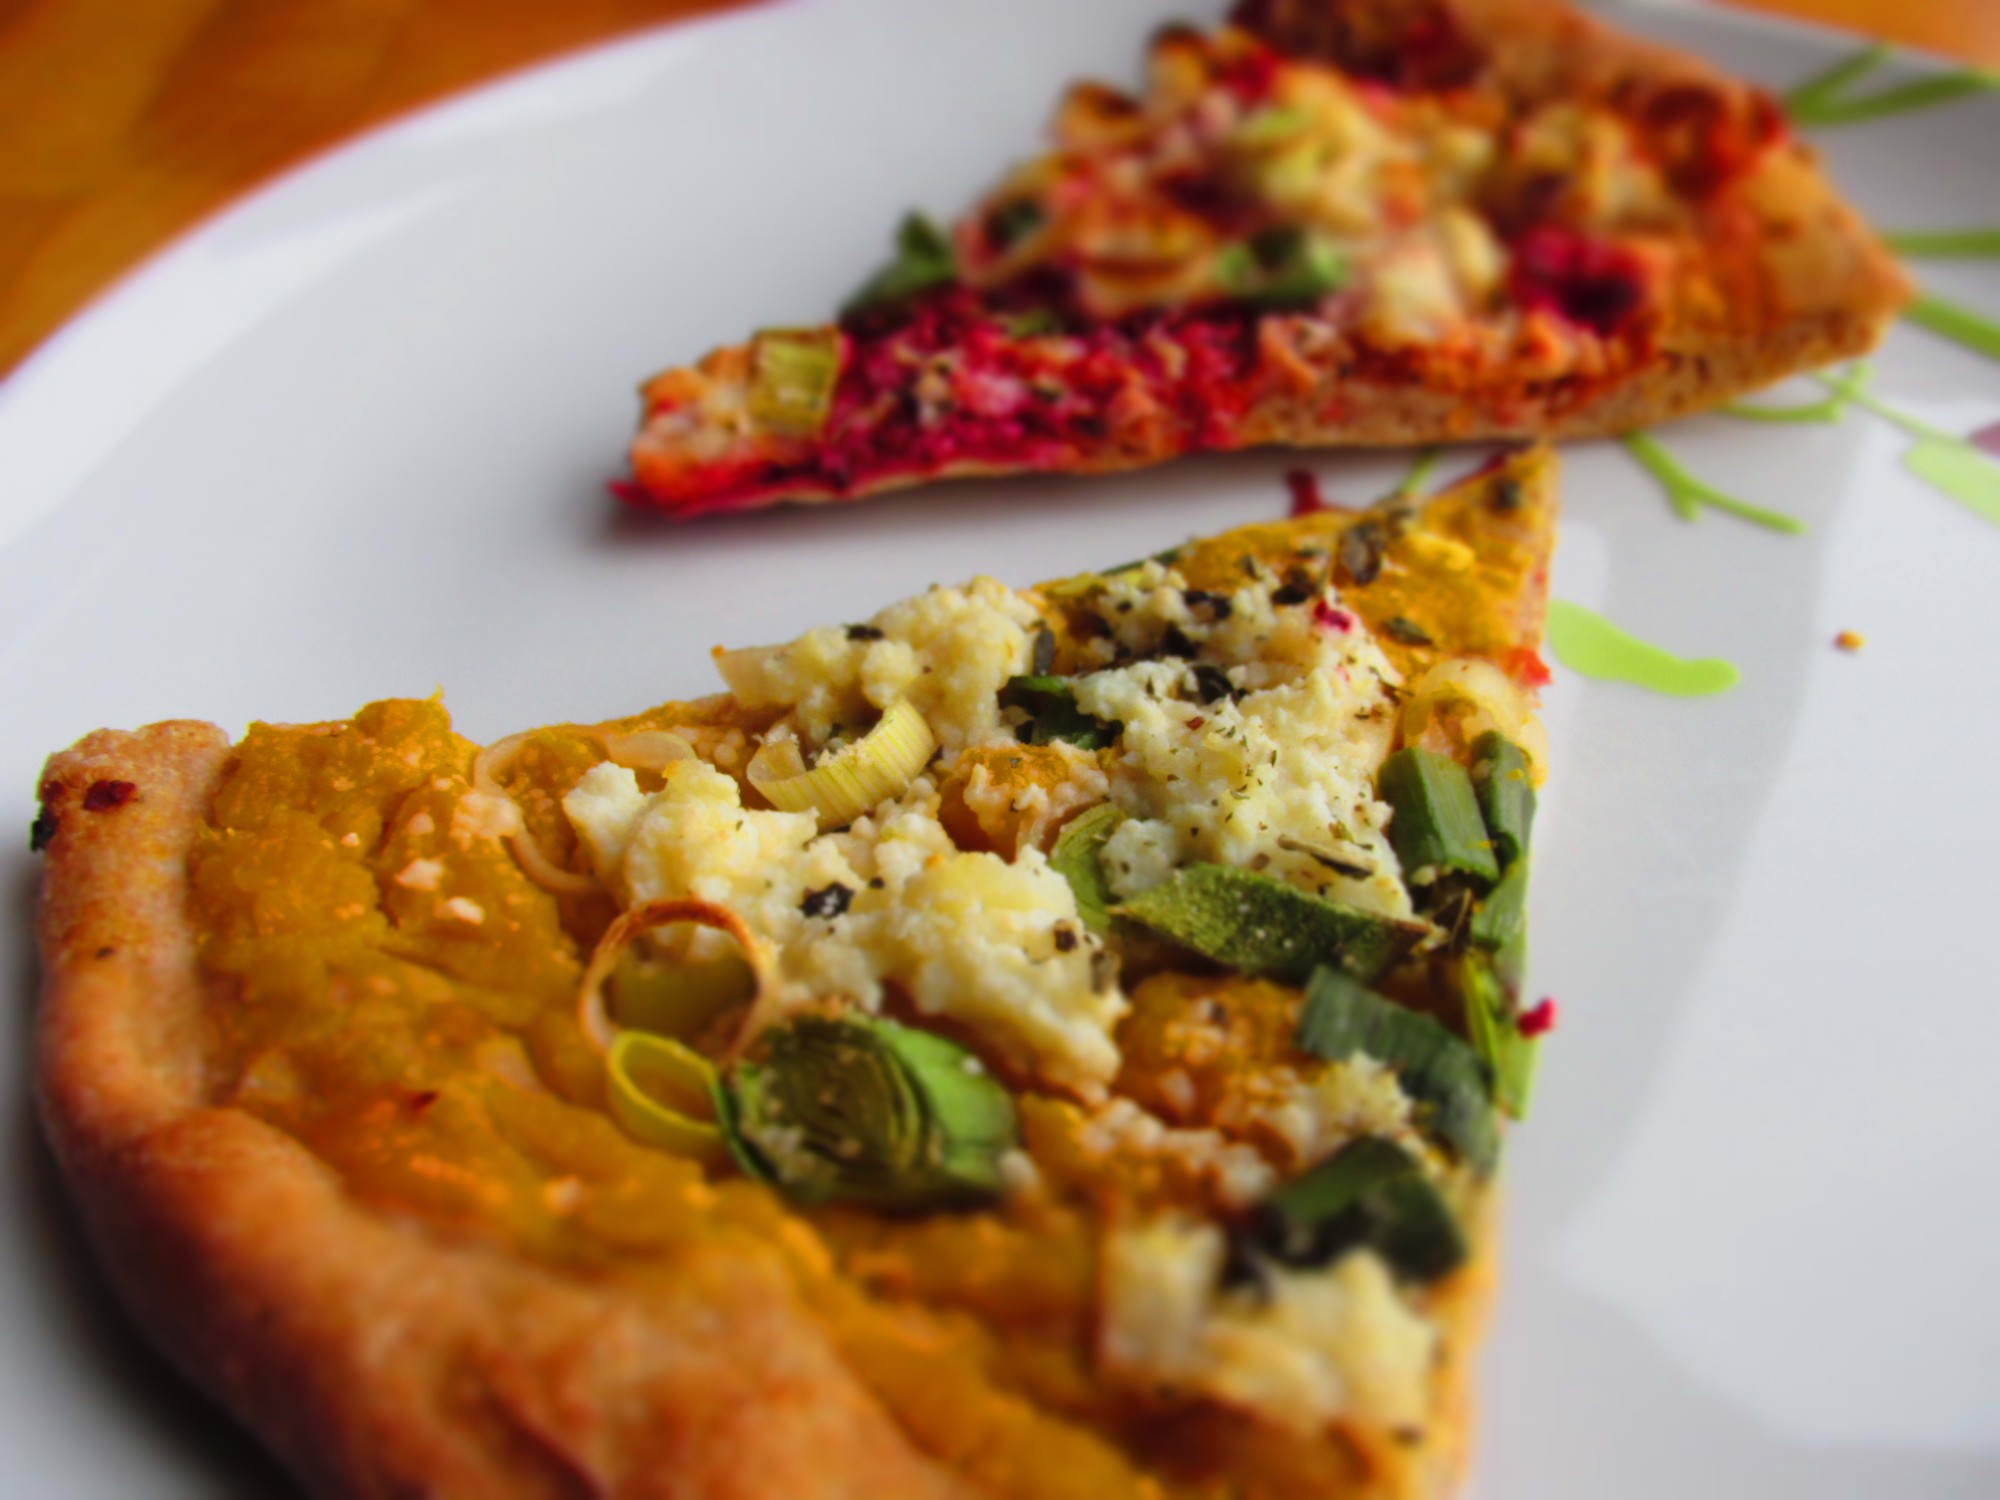 pizza slices with squash, beets, carrots, and more snuck into the sauce